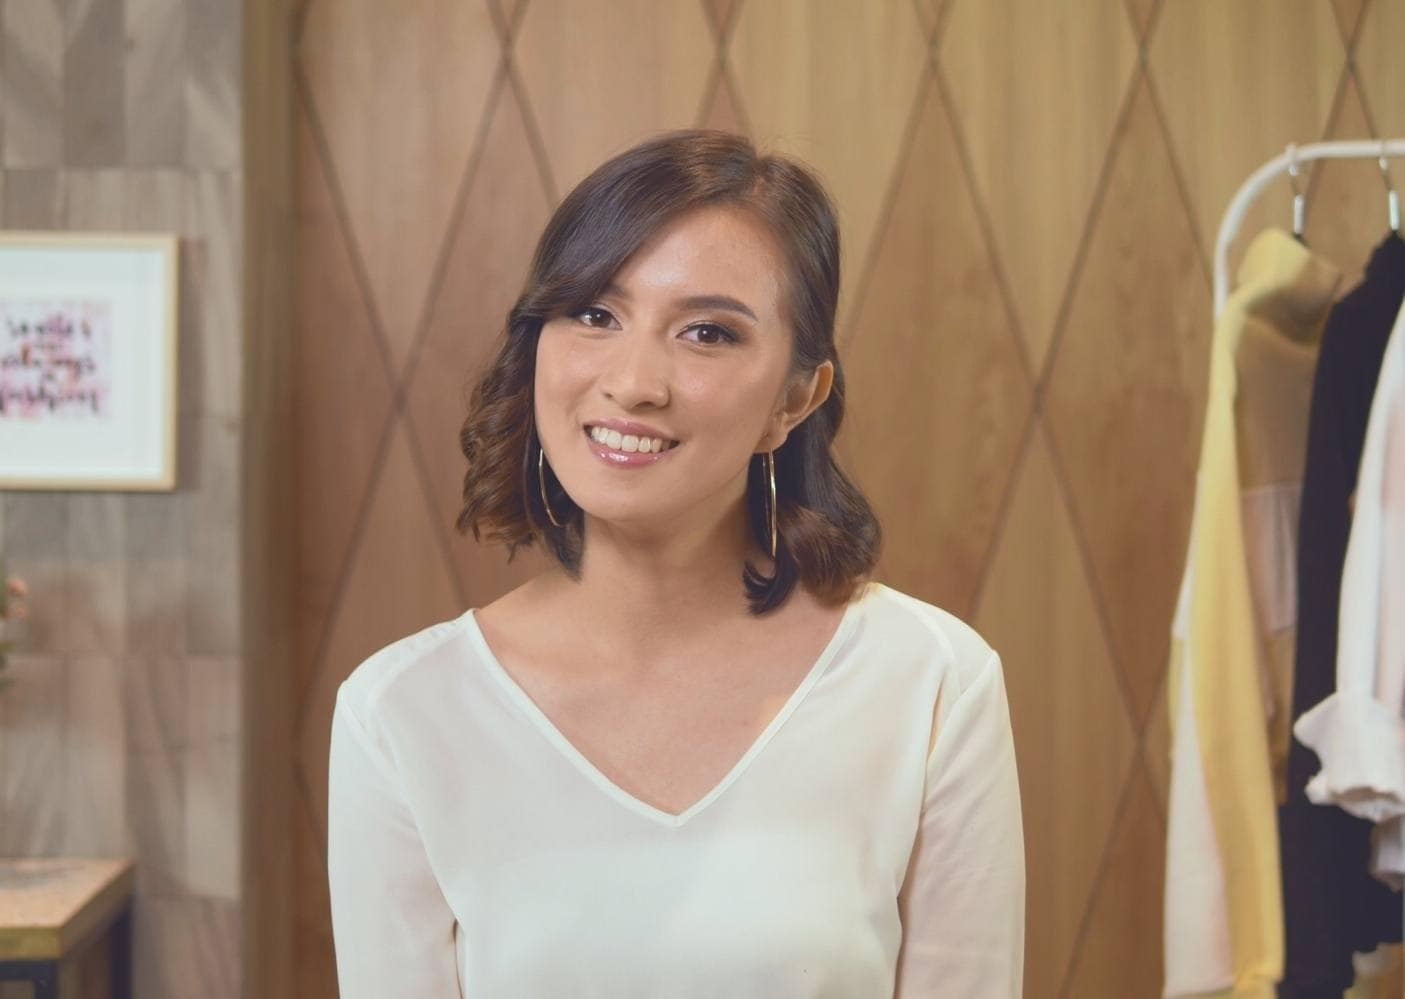 Asian woman with wavy bob with side part wearing a white V-neck top smiling